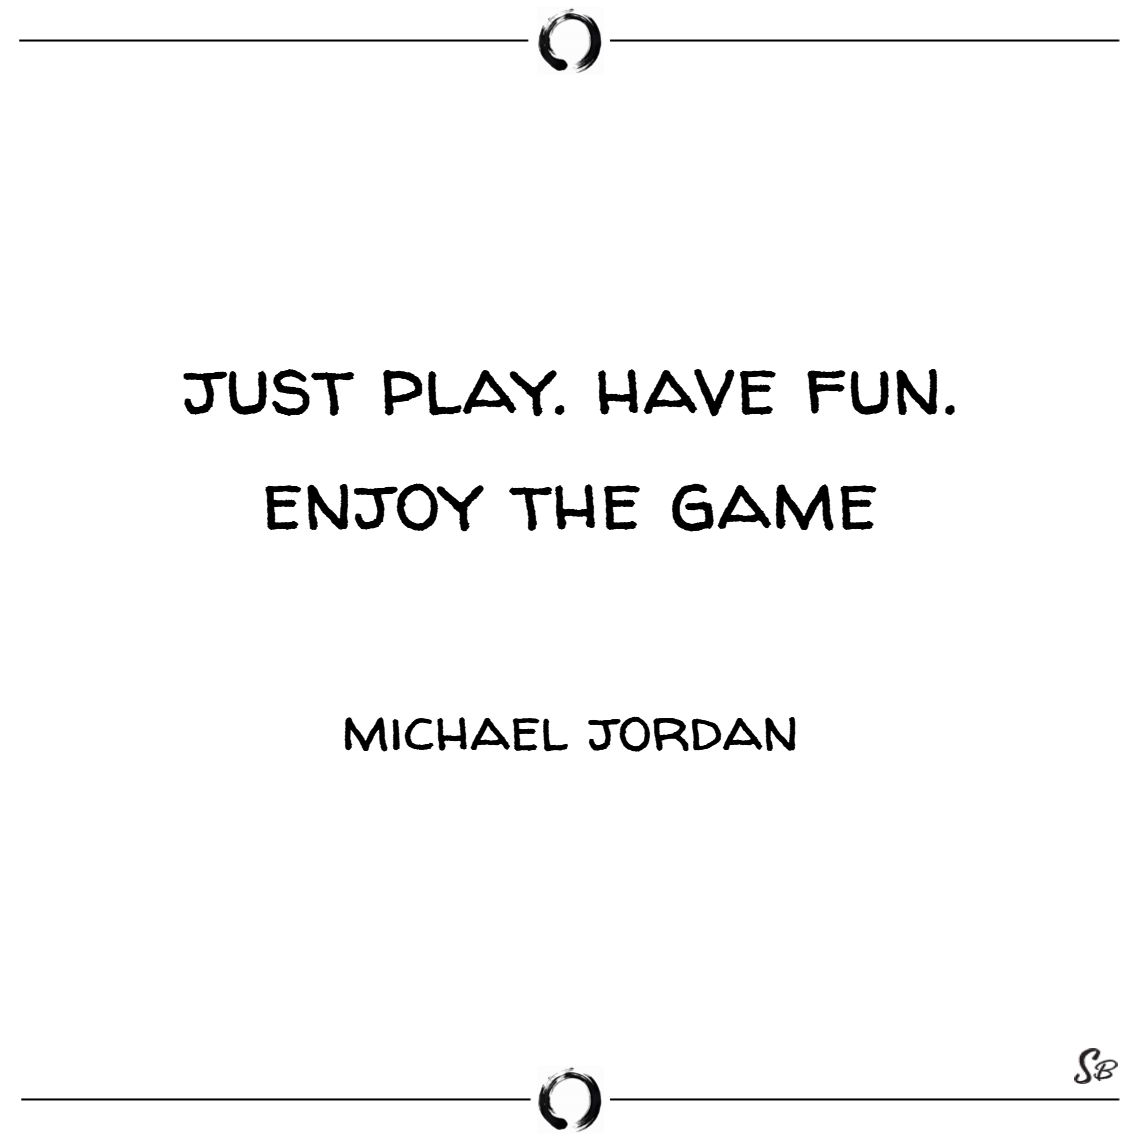 Just play. have fun. enjoy the game. – michael jor